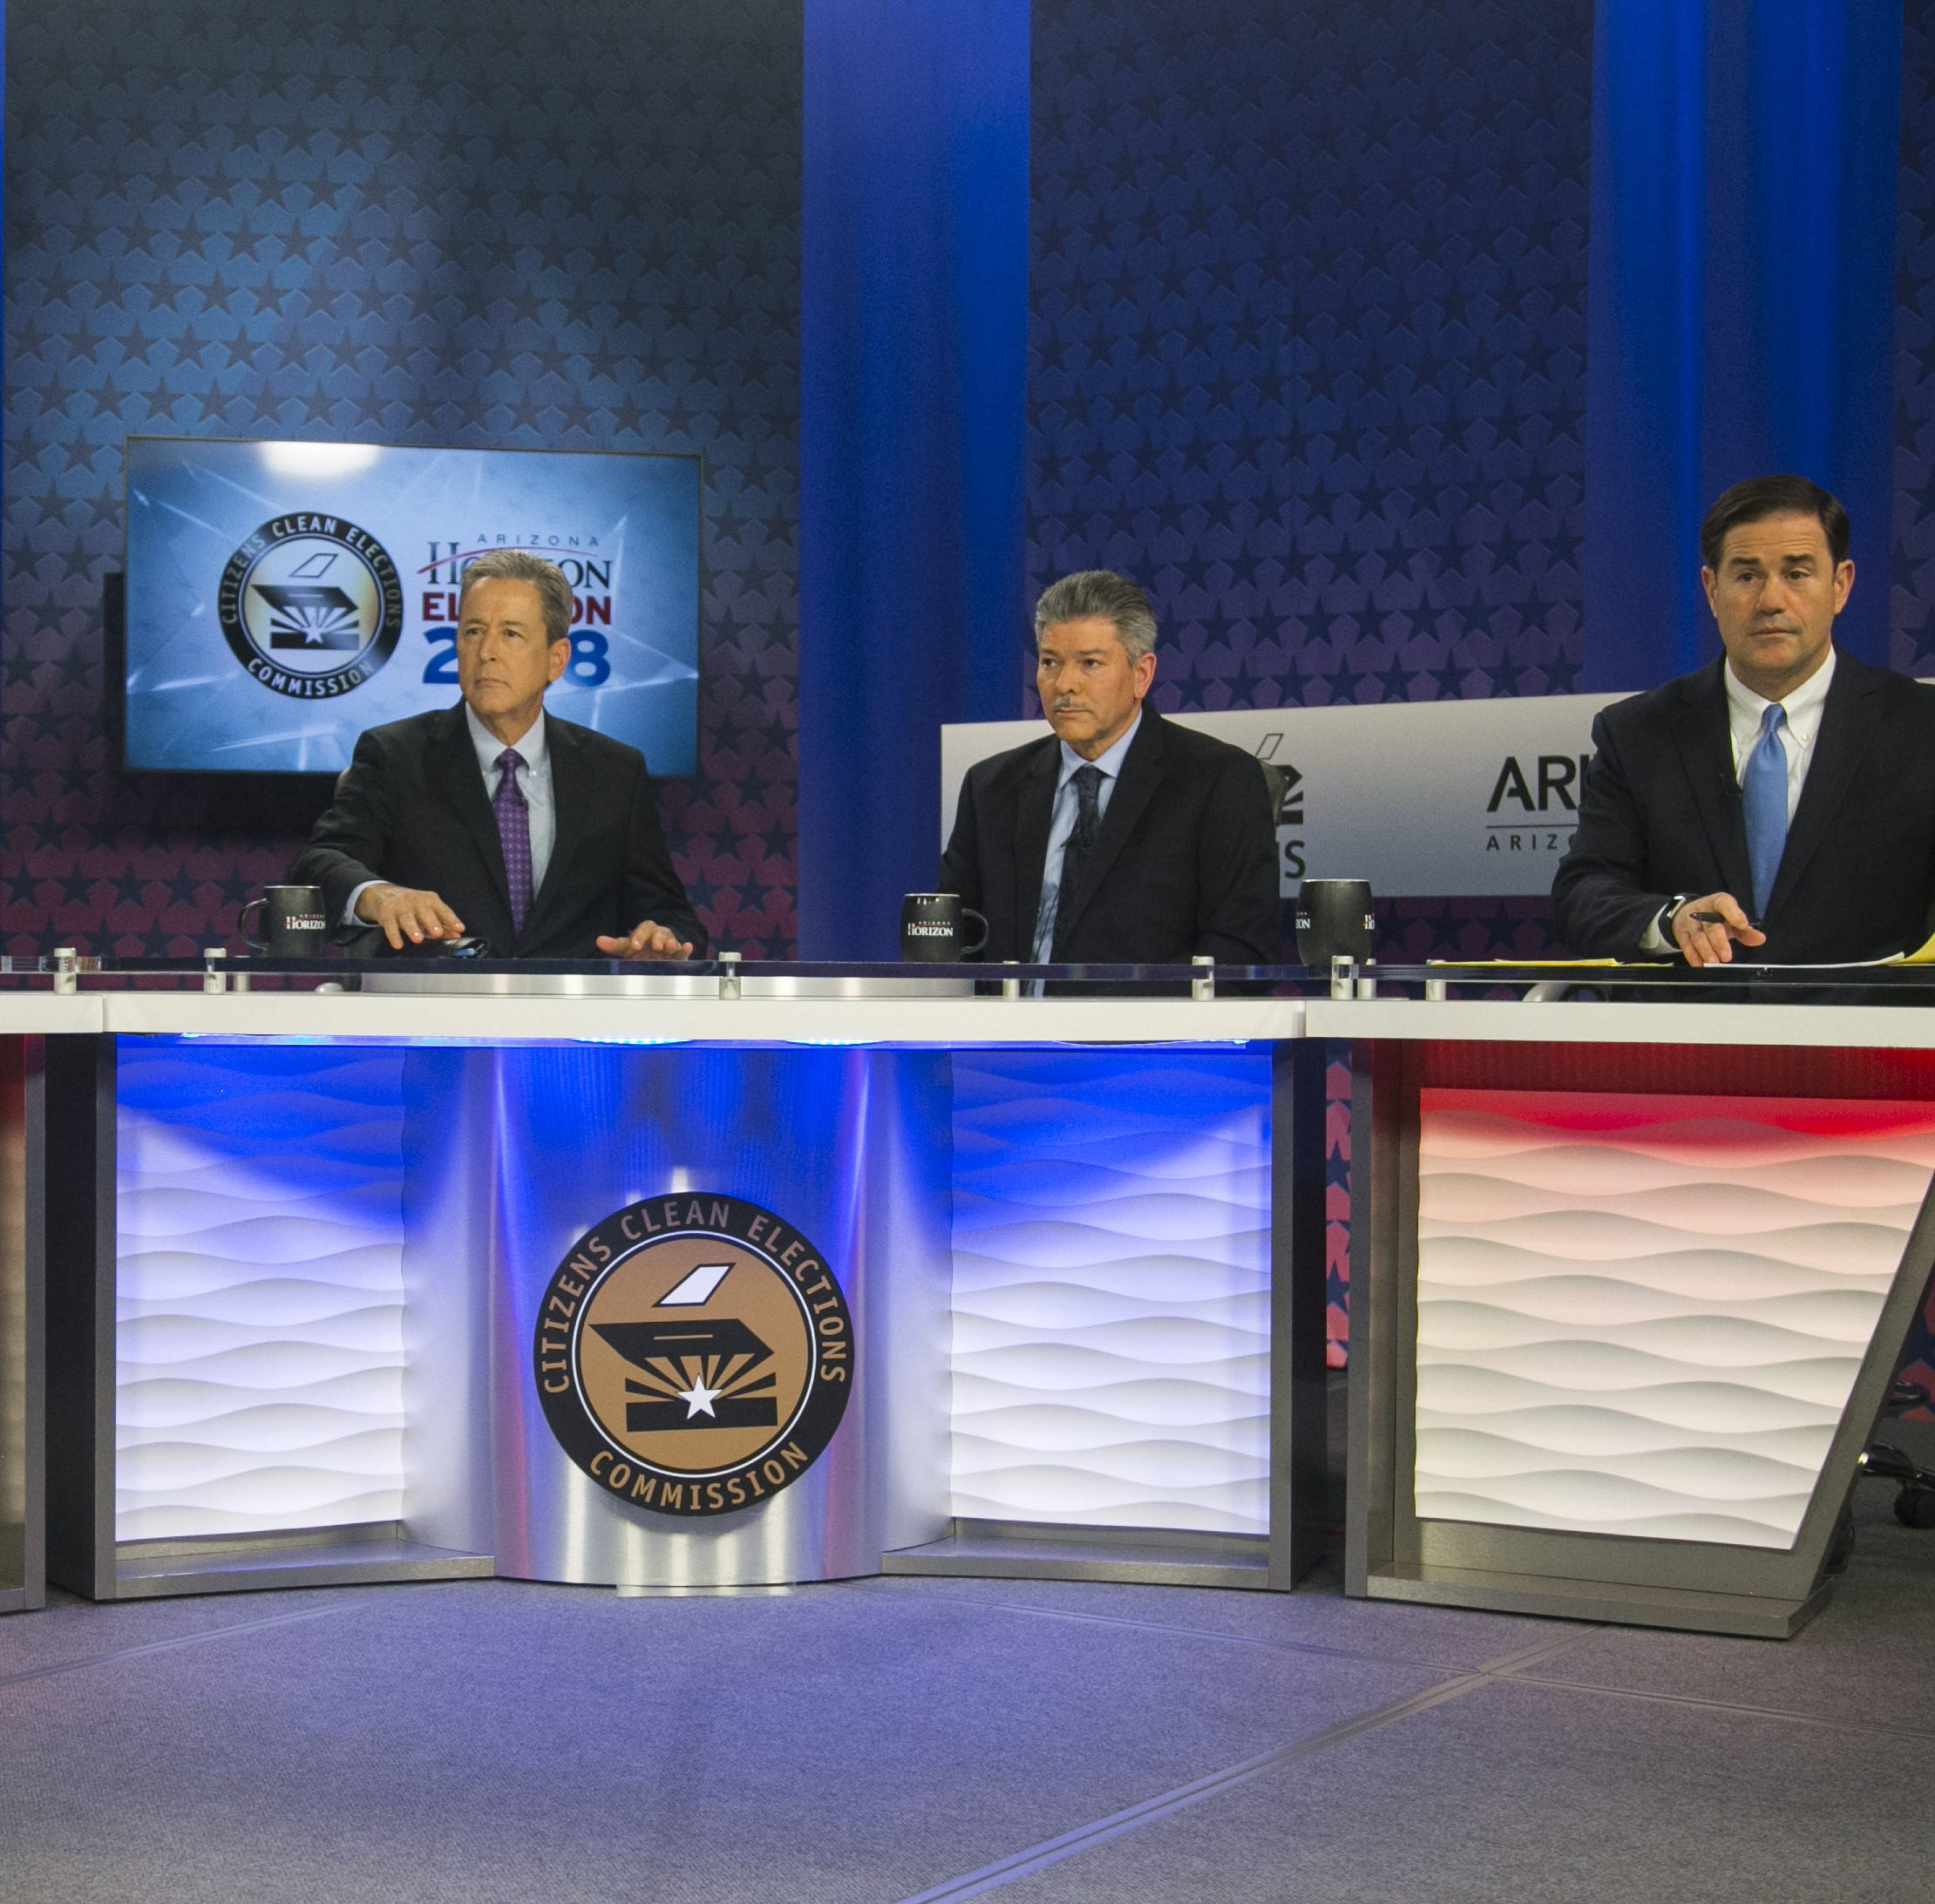 The Arizona gubernatorial debate: Where did candidates Ducey and Garcia stretch the truth?